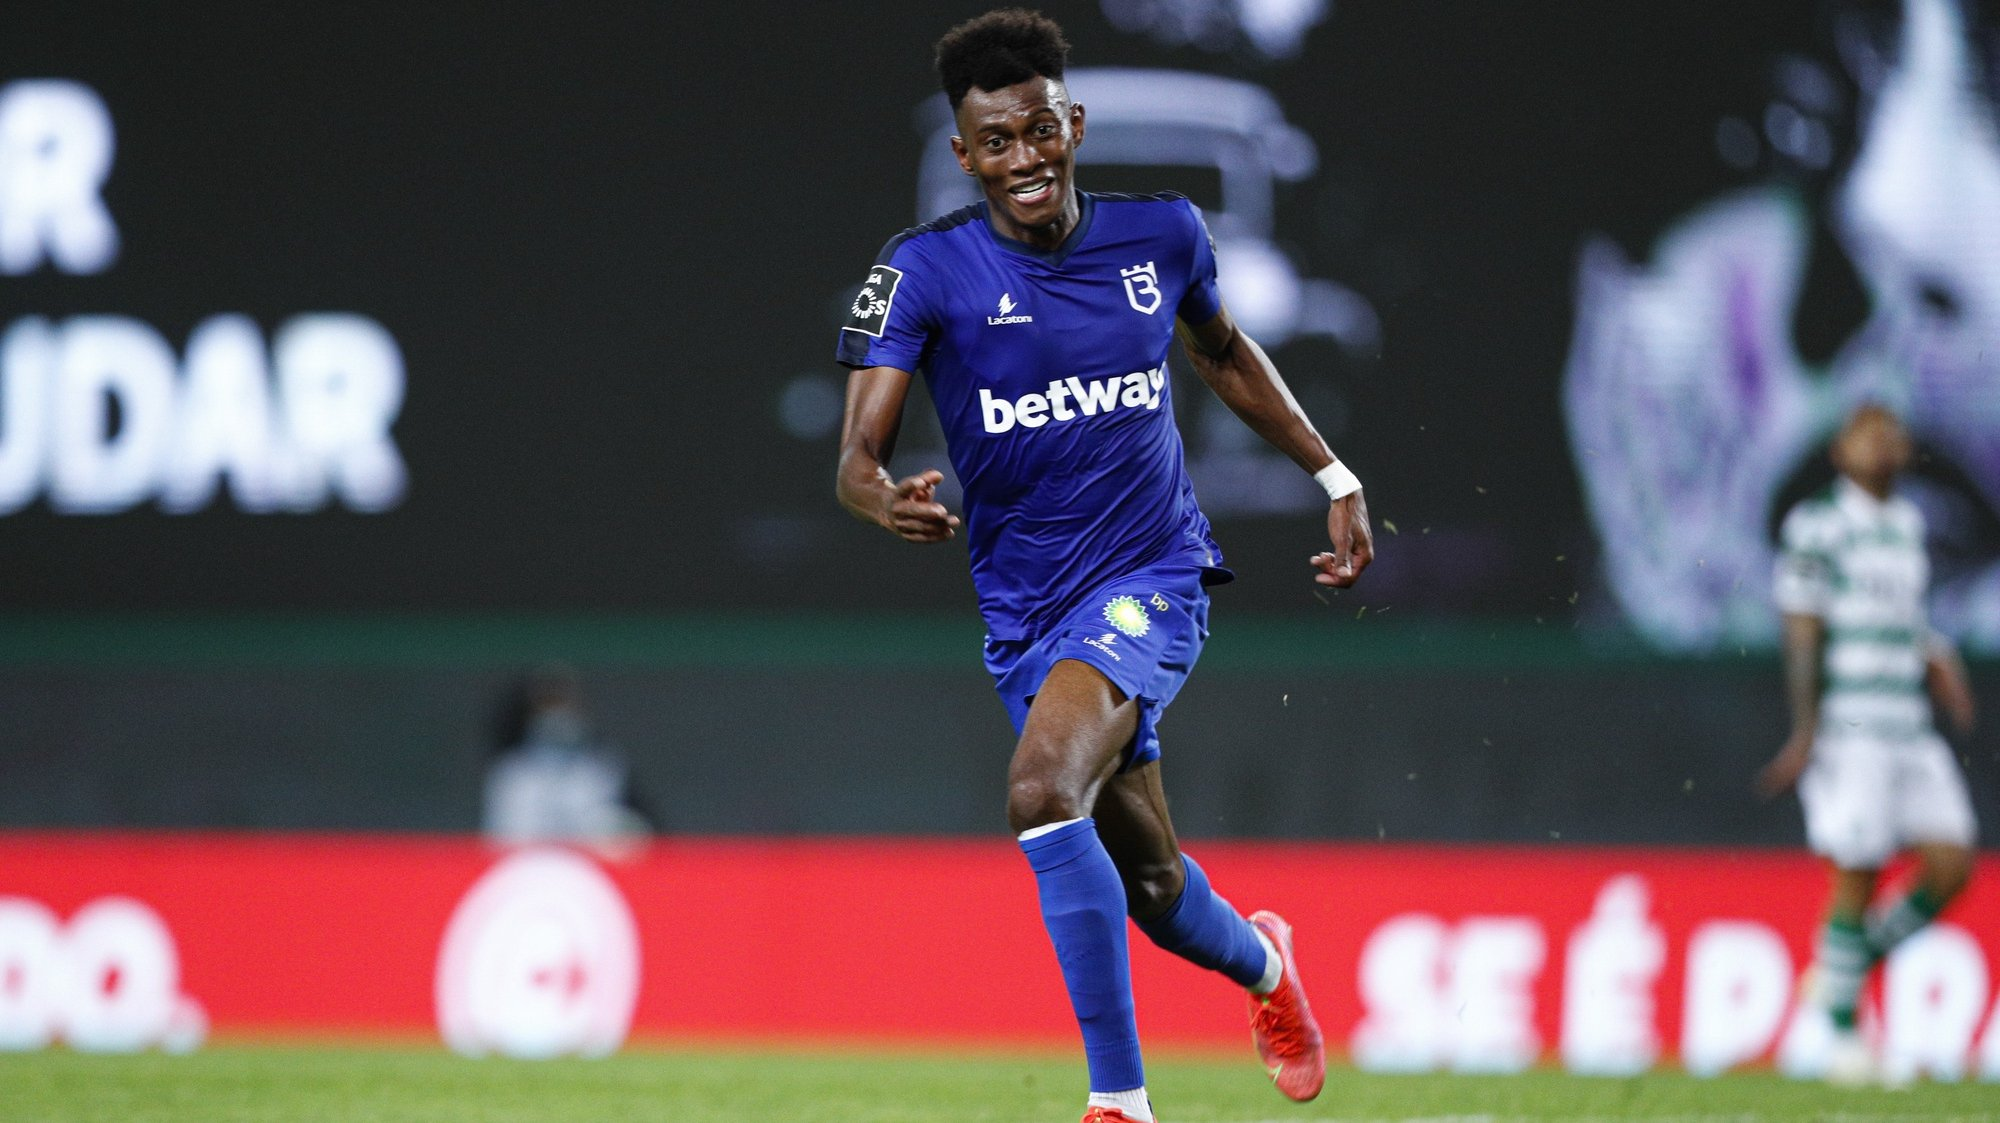 Belenenses player  Mateo Cassierra in action during their Portuguese First League soccer match held at Alvalade Stadium in Lisbon, Portugal, 21st April 2021.  ANTONIO COTRIM/LUSA